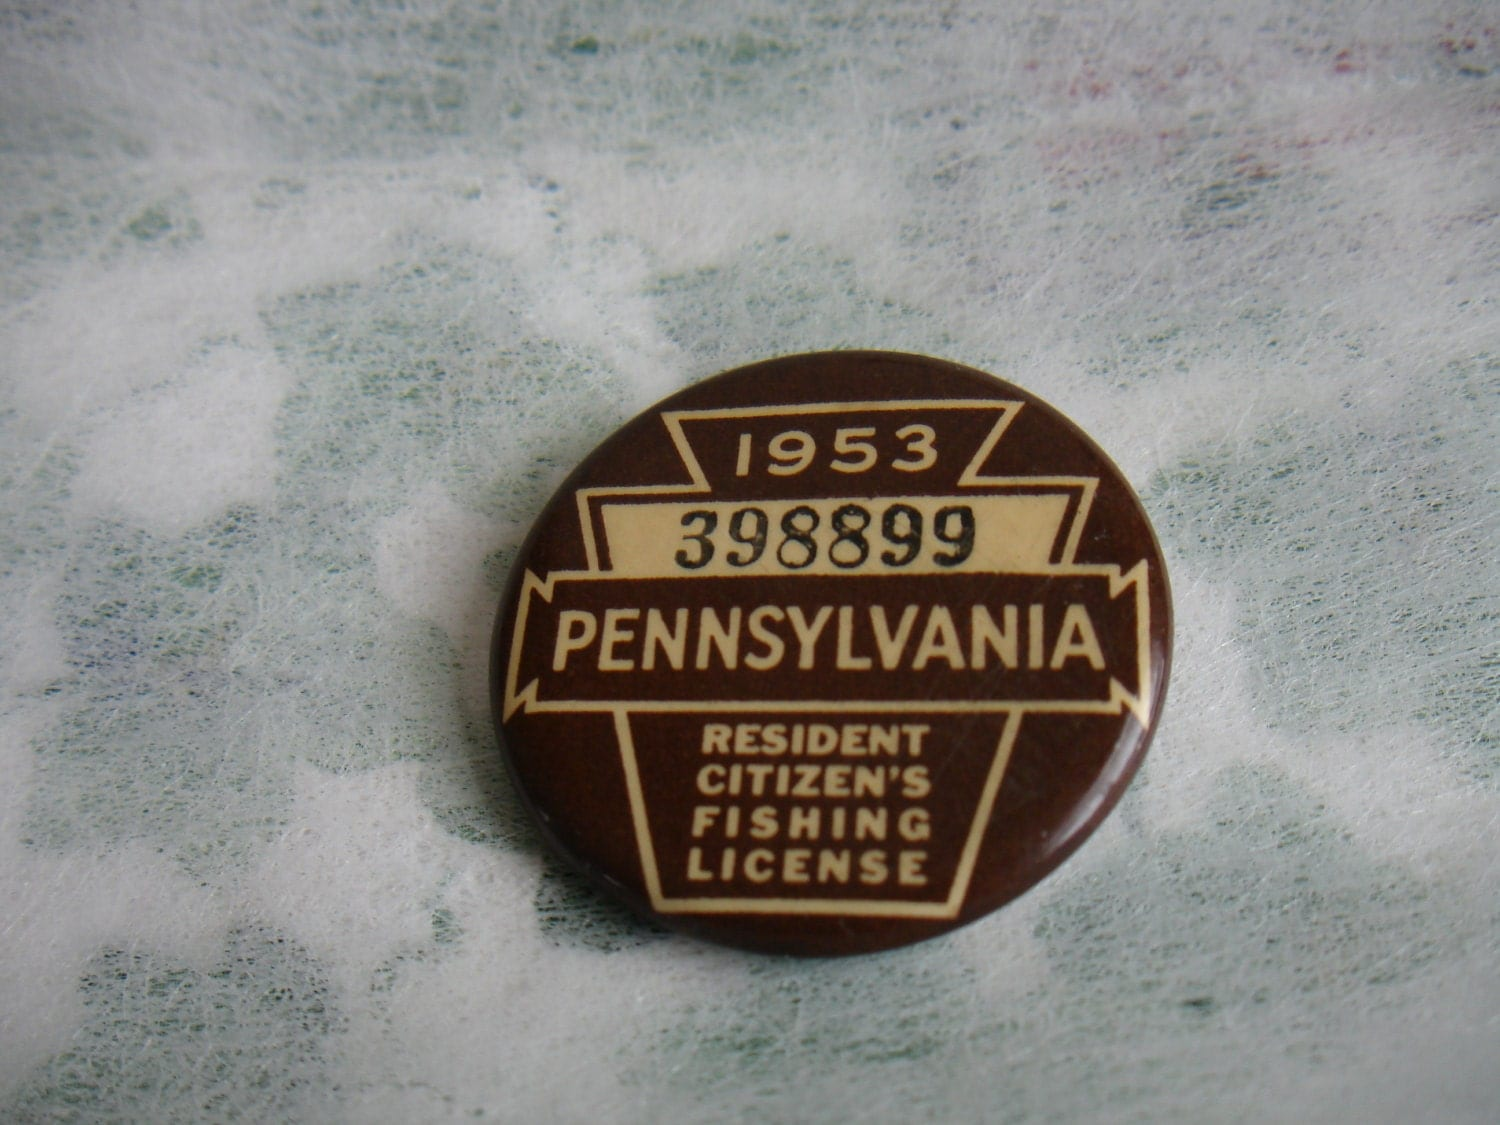 Pa pin back 1953 fishing license by bighollow on etsy for Pa fishing license online